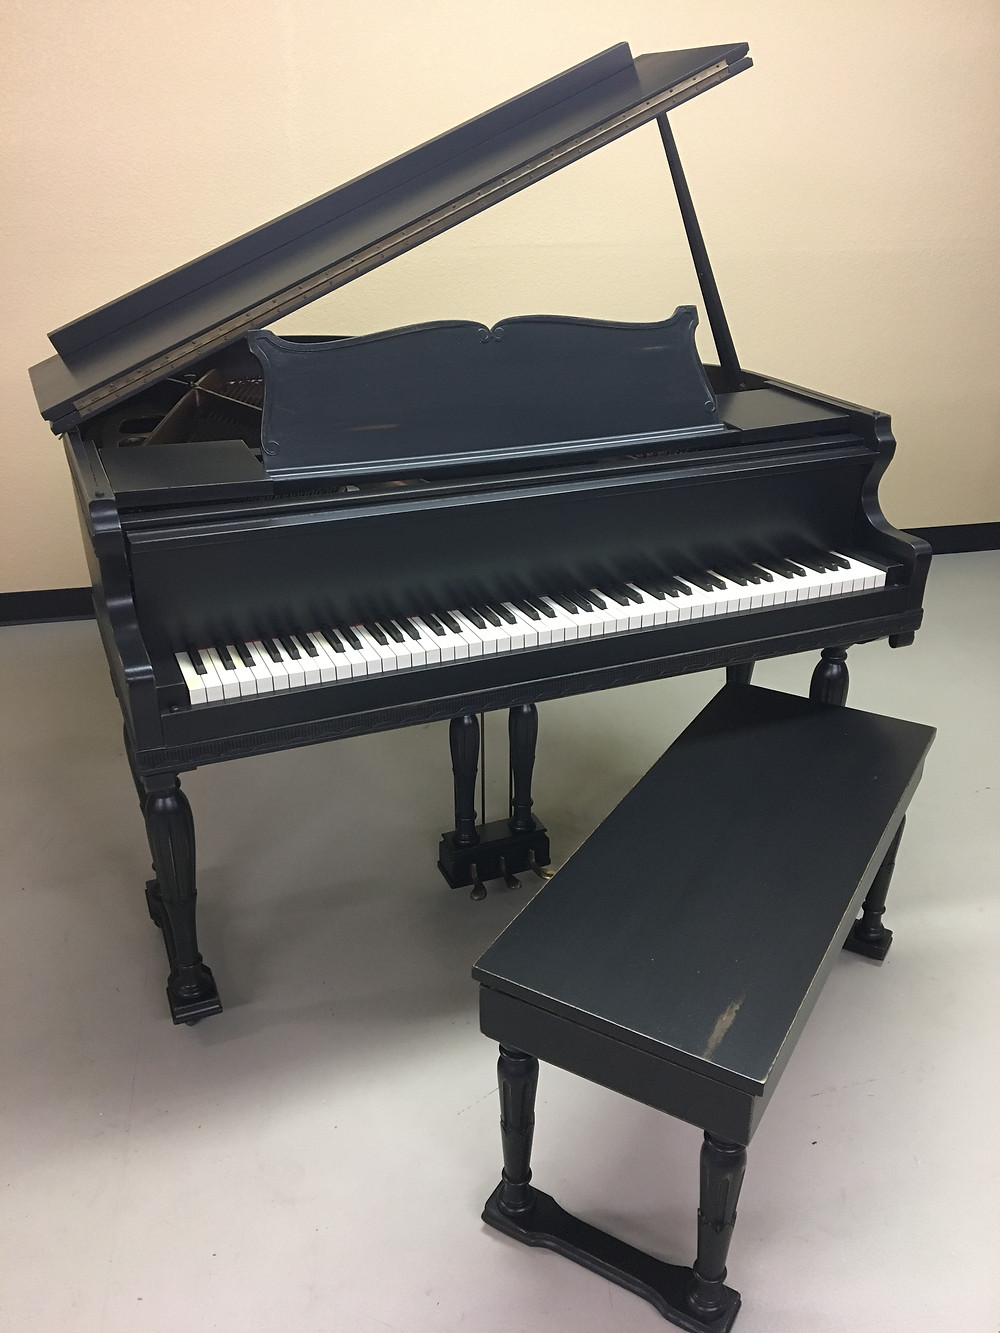 Painted Black Grand Piano